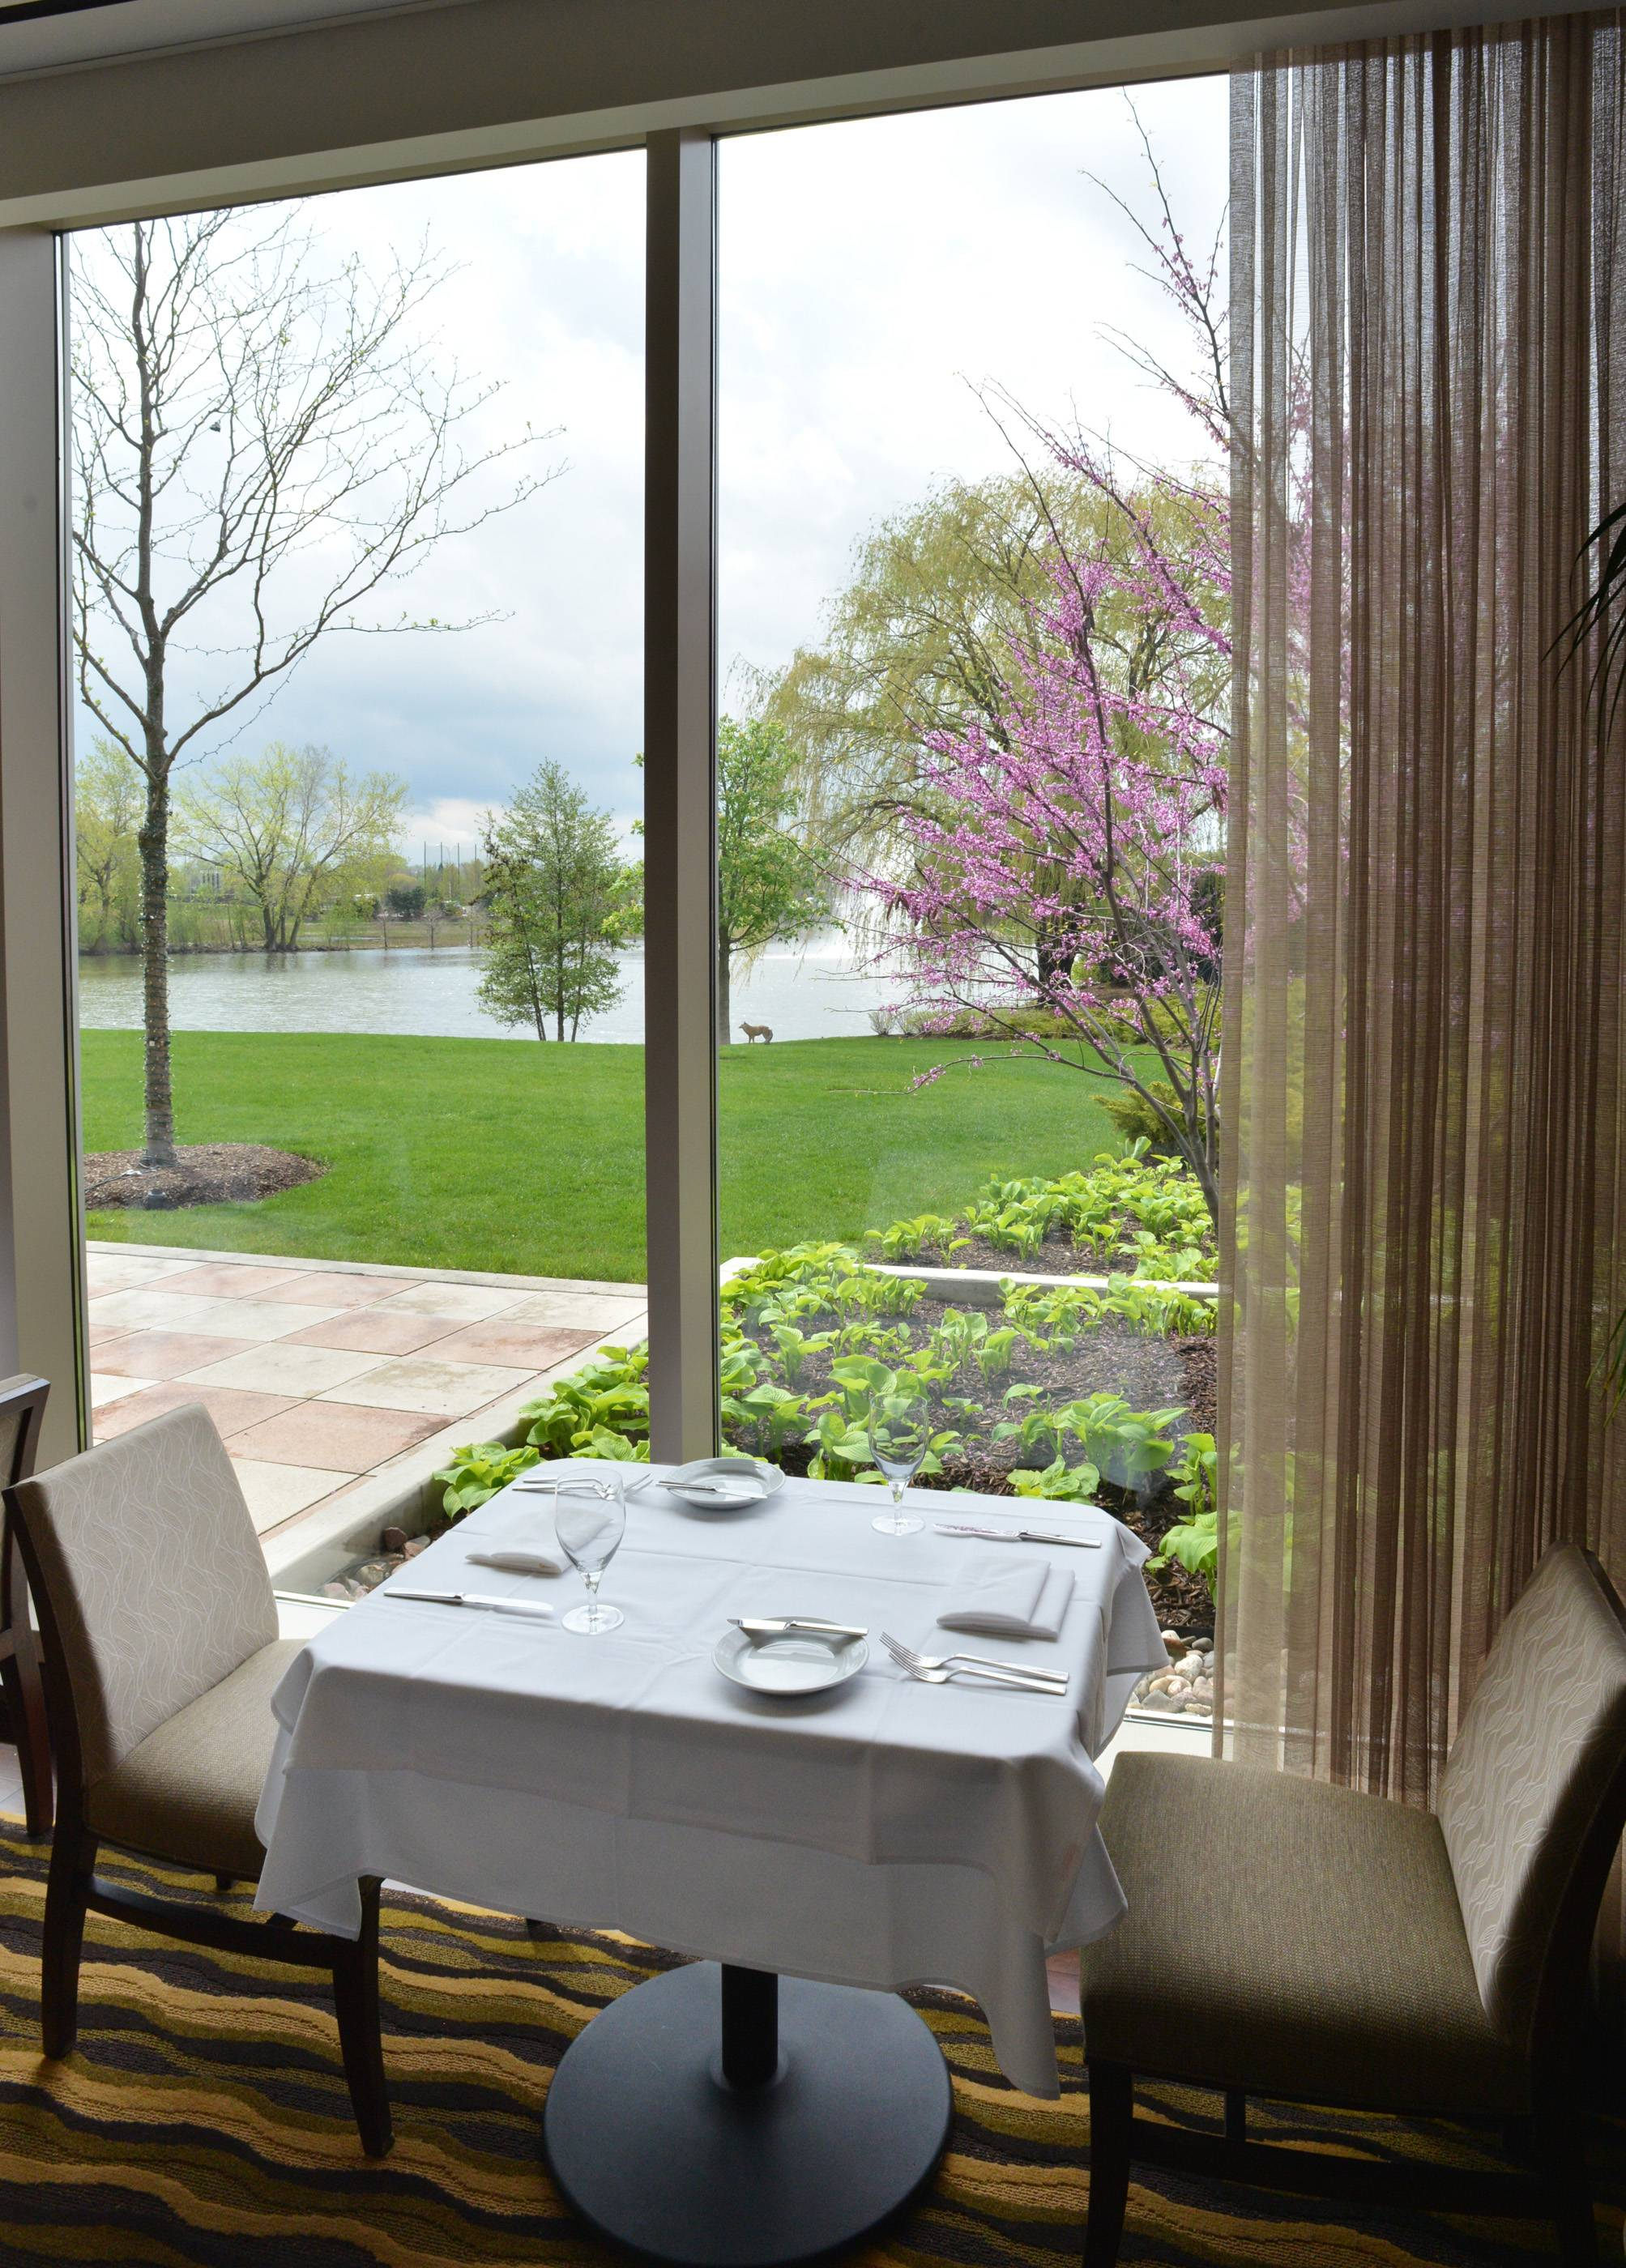 The dining room at Waterleaf overlooks a pond on the campus of College of DuPage in Glen Ellyn.